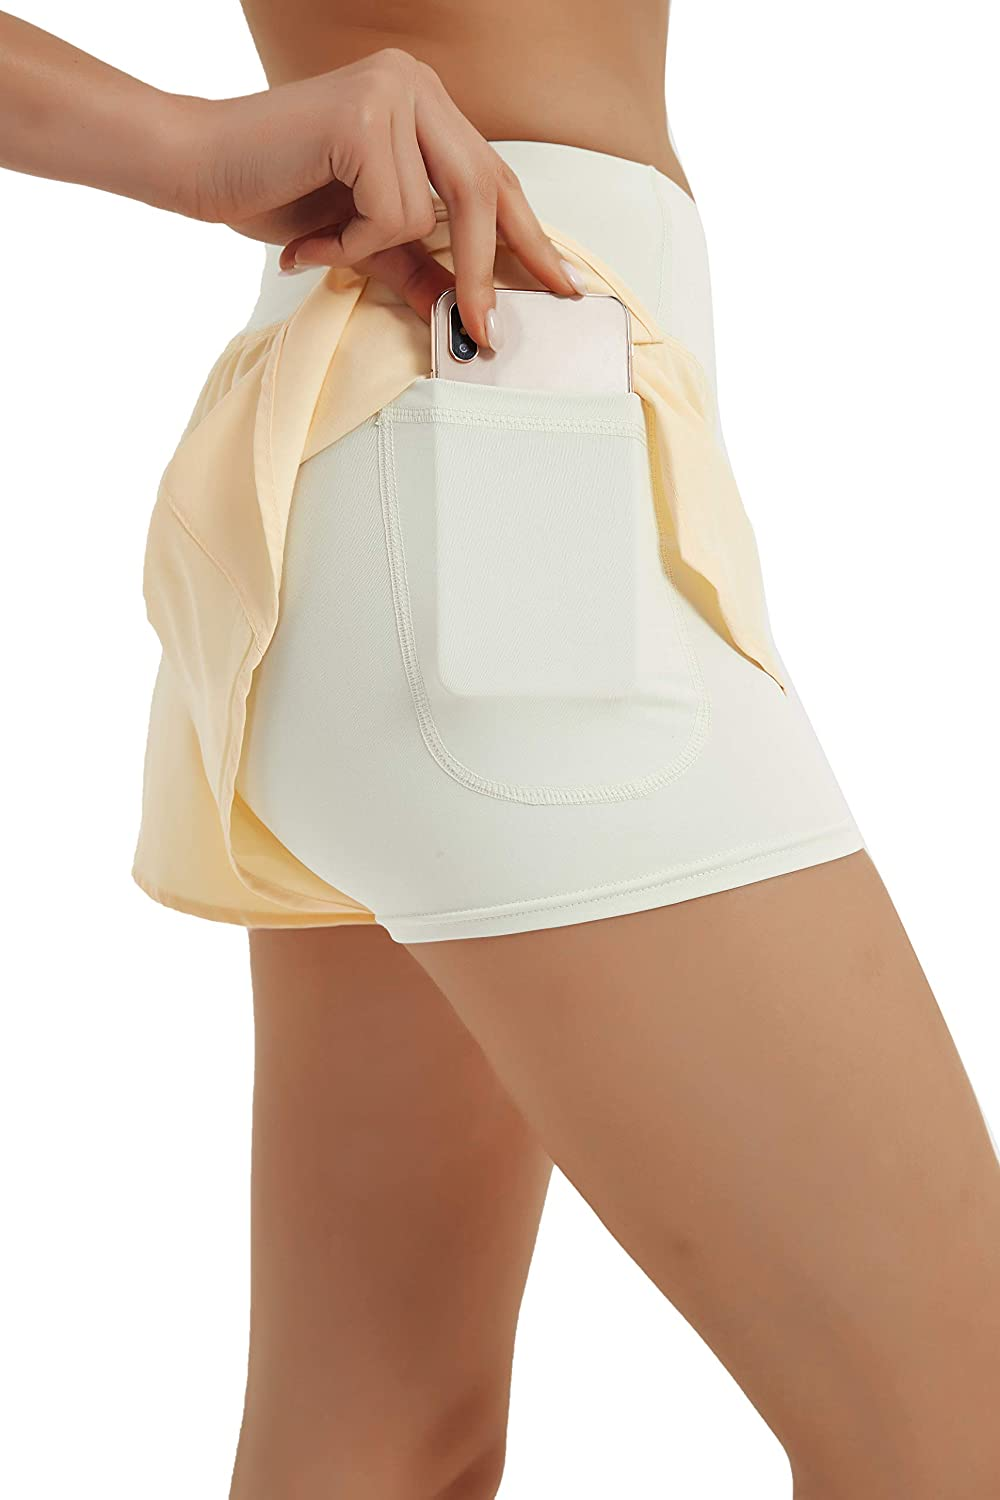 Yknktstc Womens Running Shorts Quick-Dry Active Sports Yoga Max Mail order 55% OFF Gym